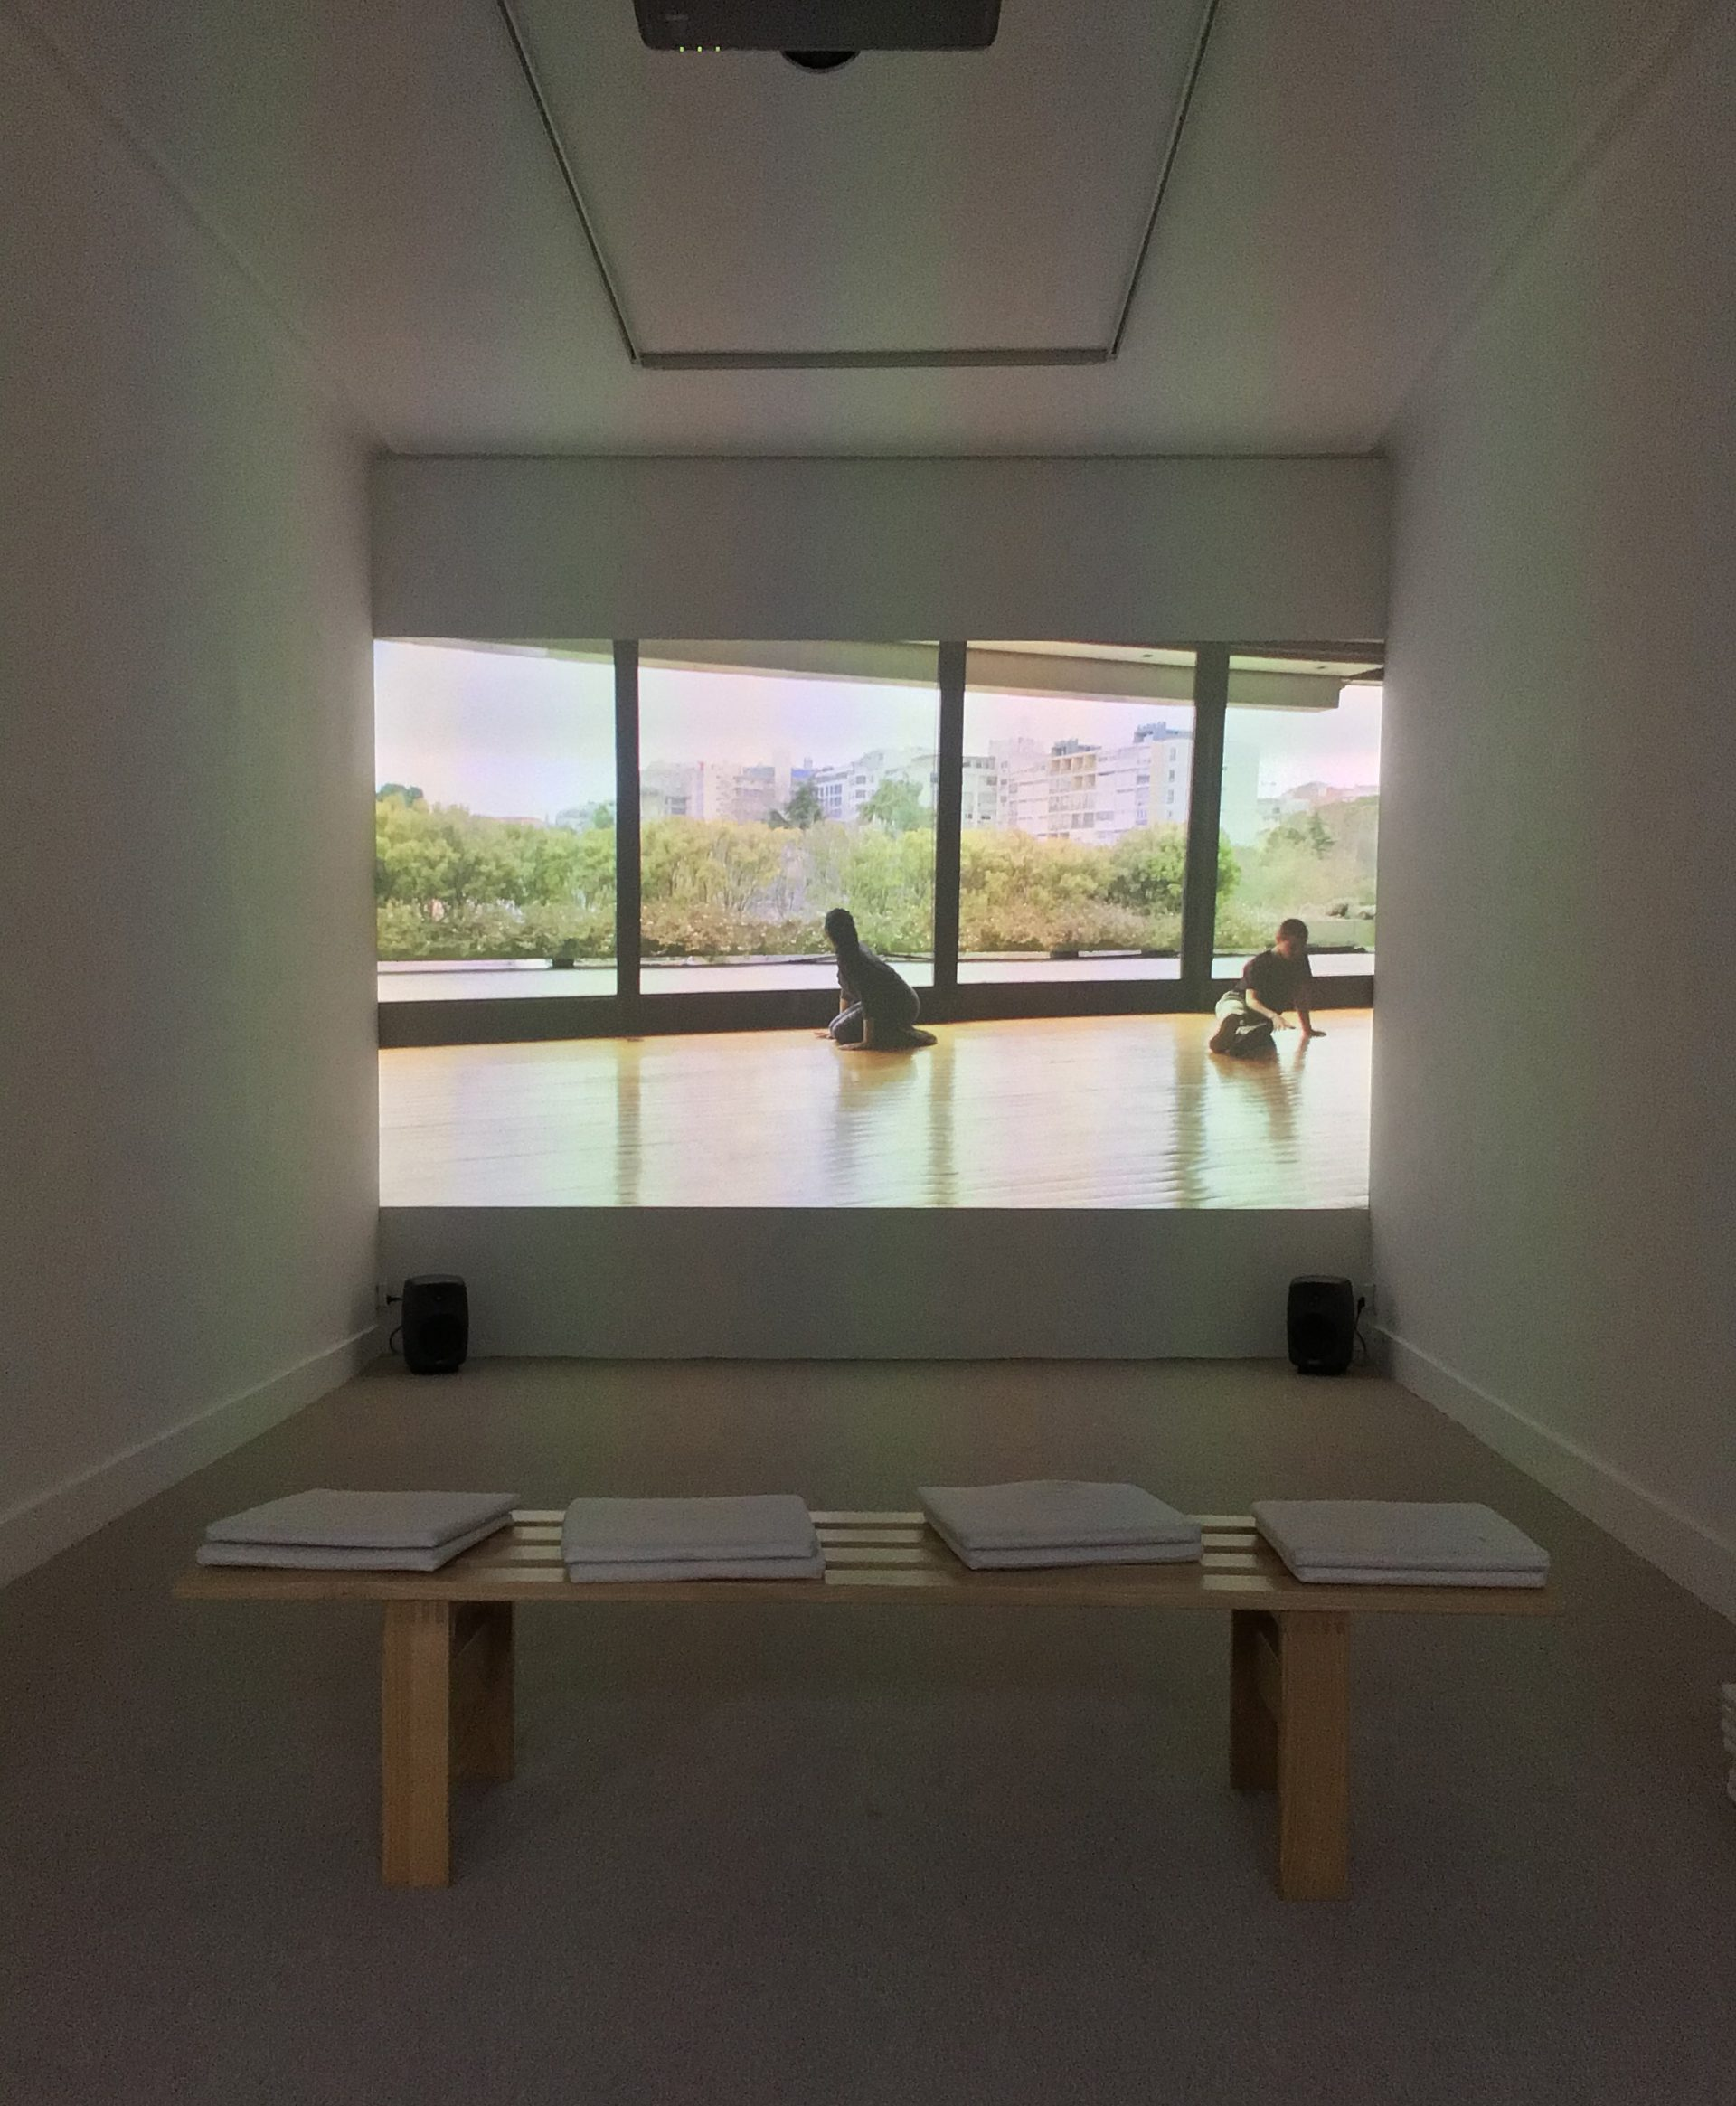 Manon de Boer - installation view at Jan Mot, 2020